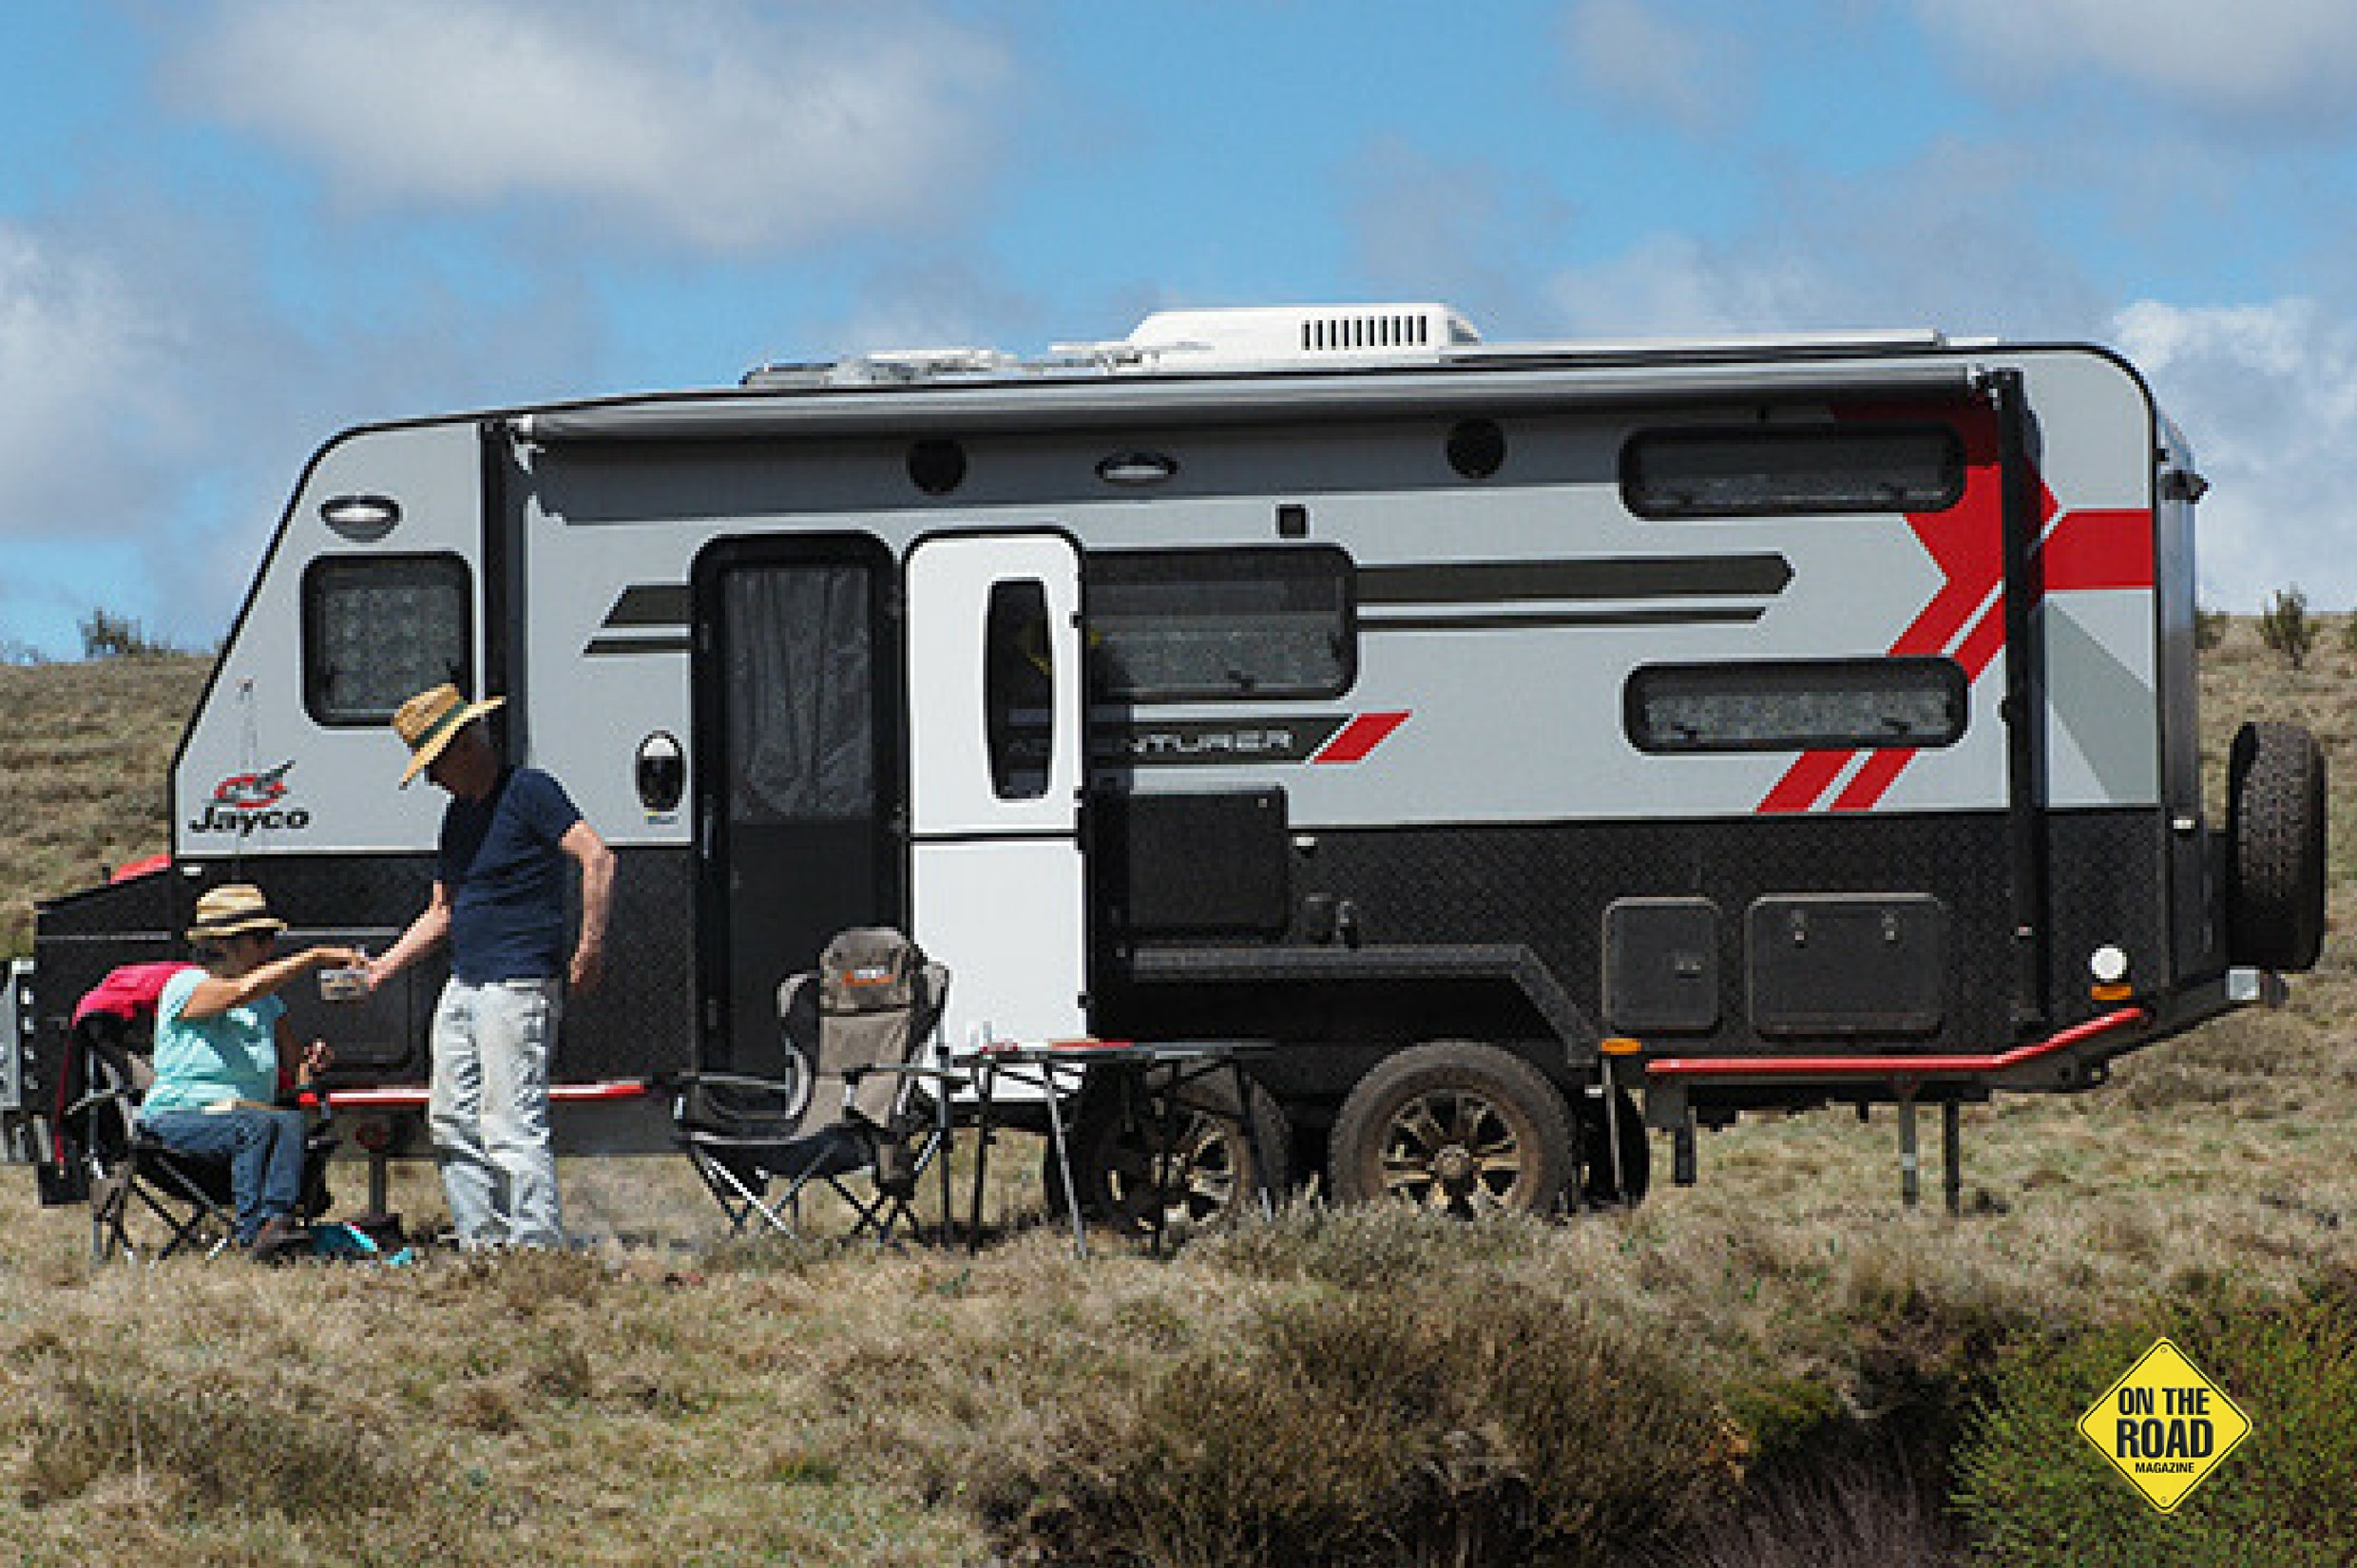 Jayco Adventurer 19.6-3 side view